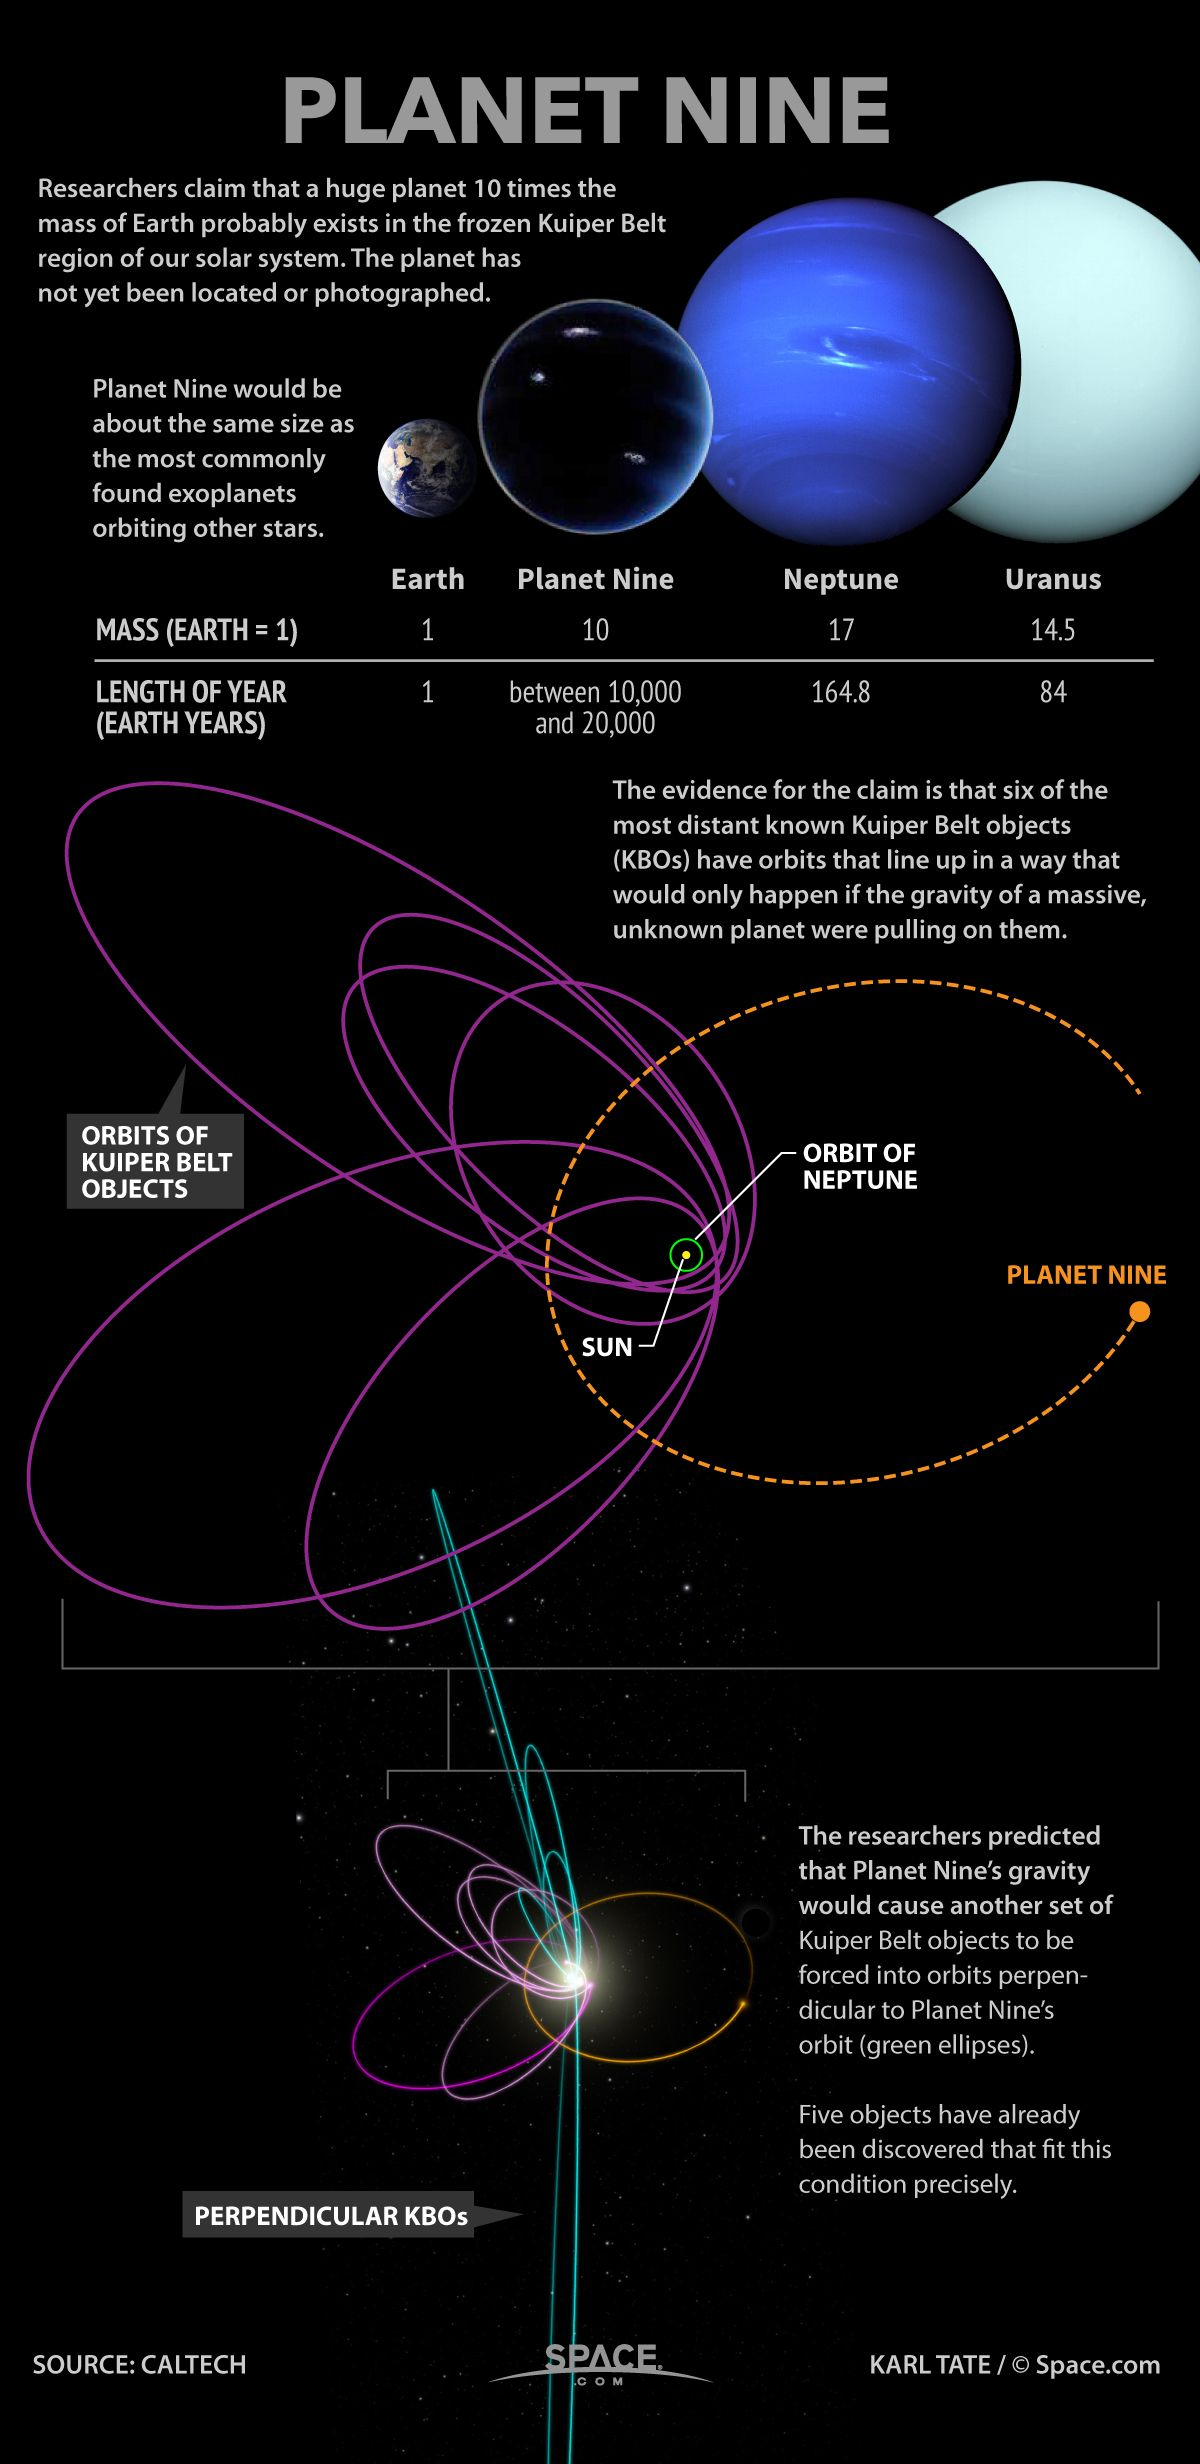 medium resolution of was planet nine captured by the sun during the cluster phase